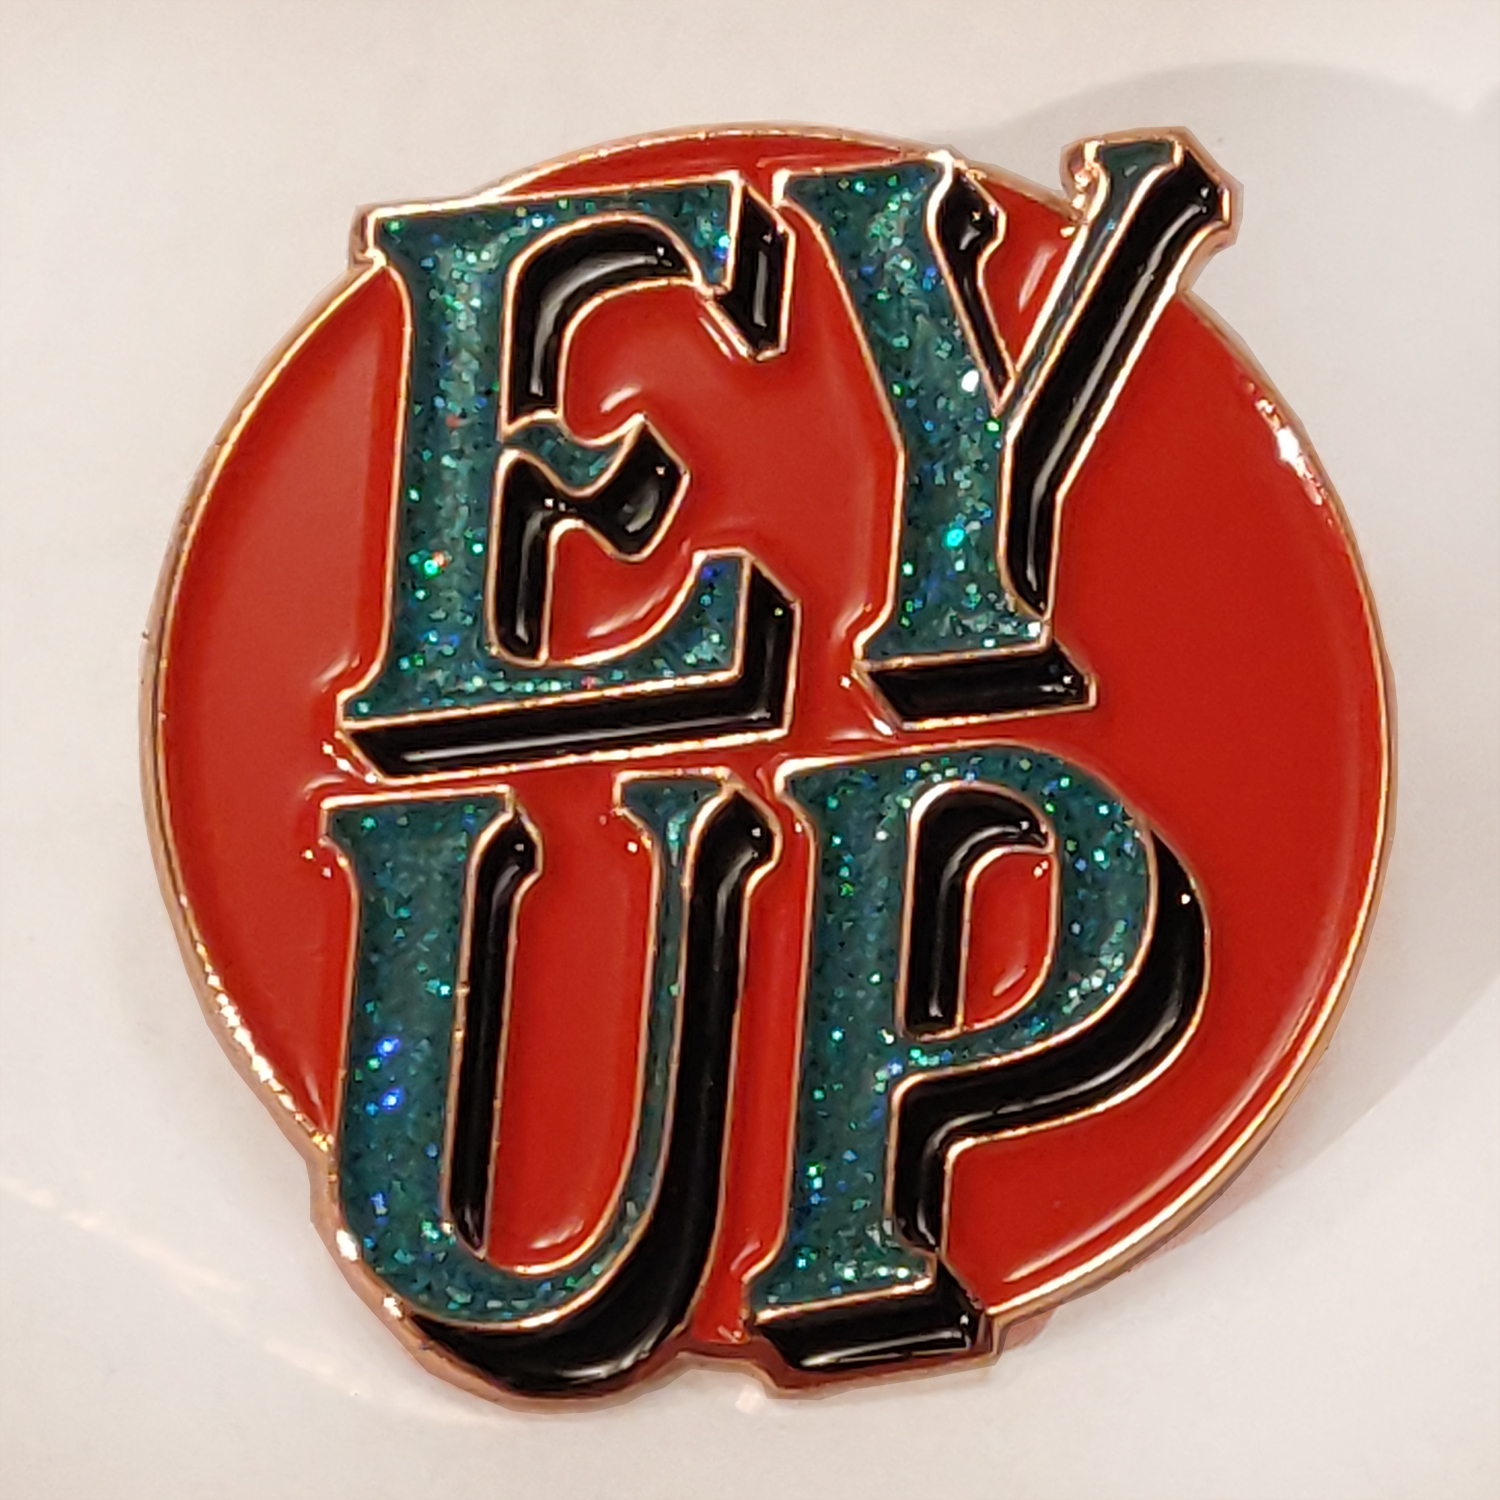 'EY UP' enamel pin- Red SOLD OUT